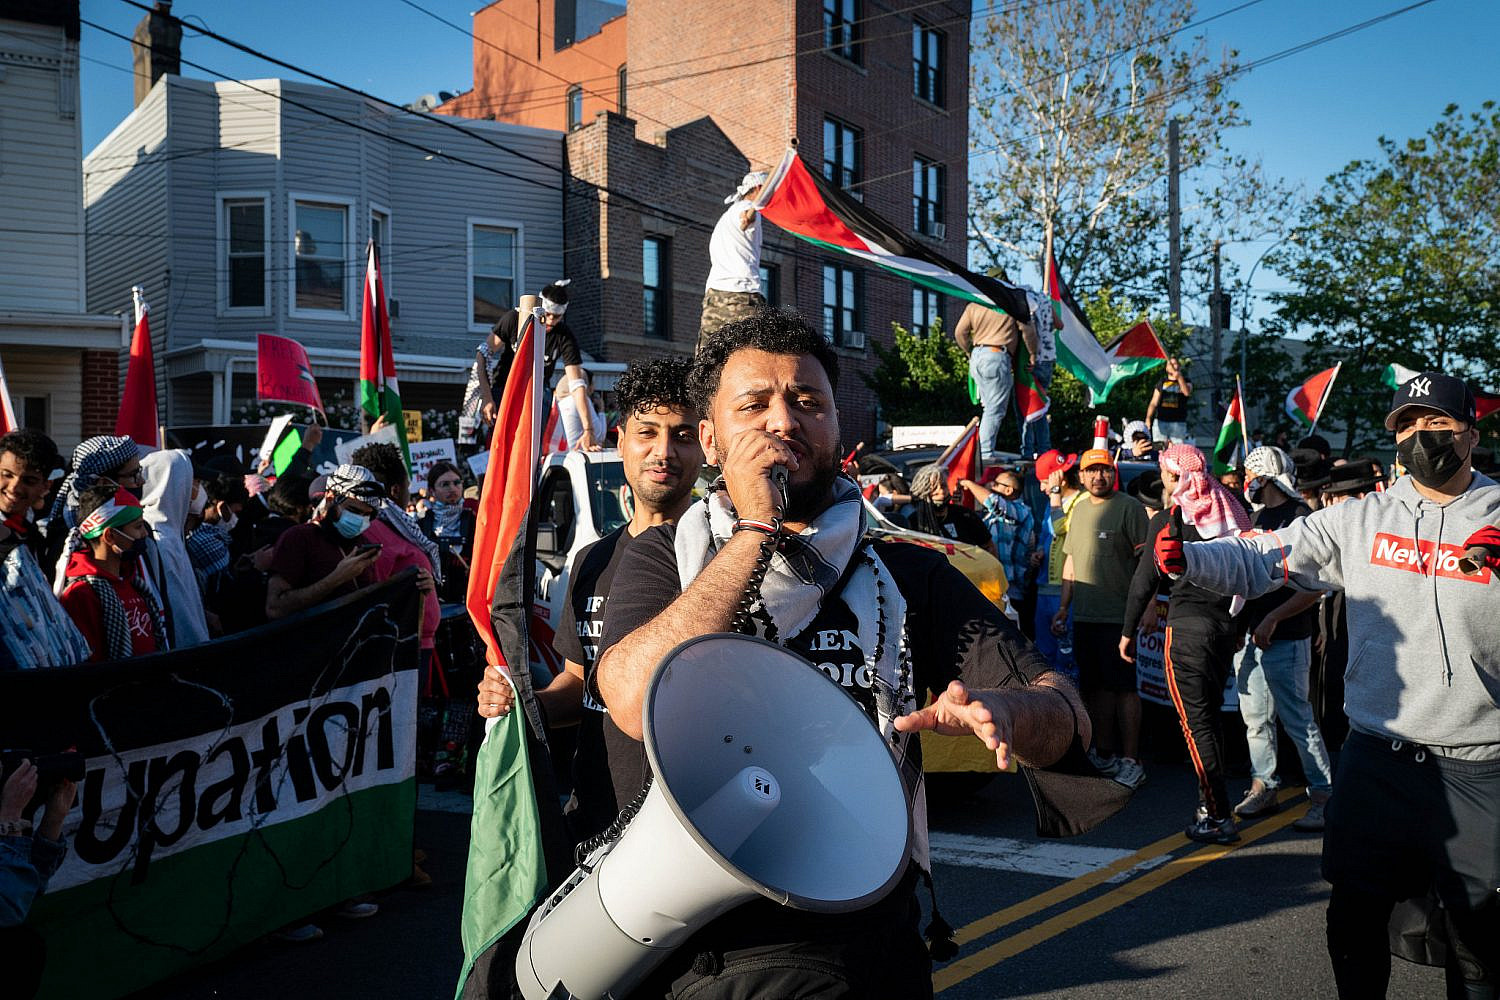 Pro-Palestinian protesters rally in the Bronx, New York City, May 31, 2021. (Luke Tress/Flash90)